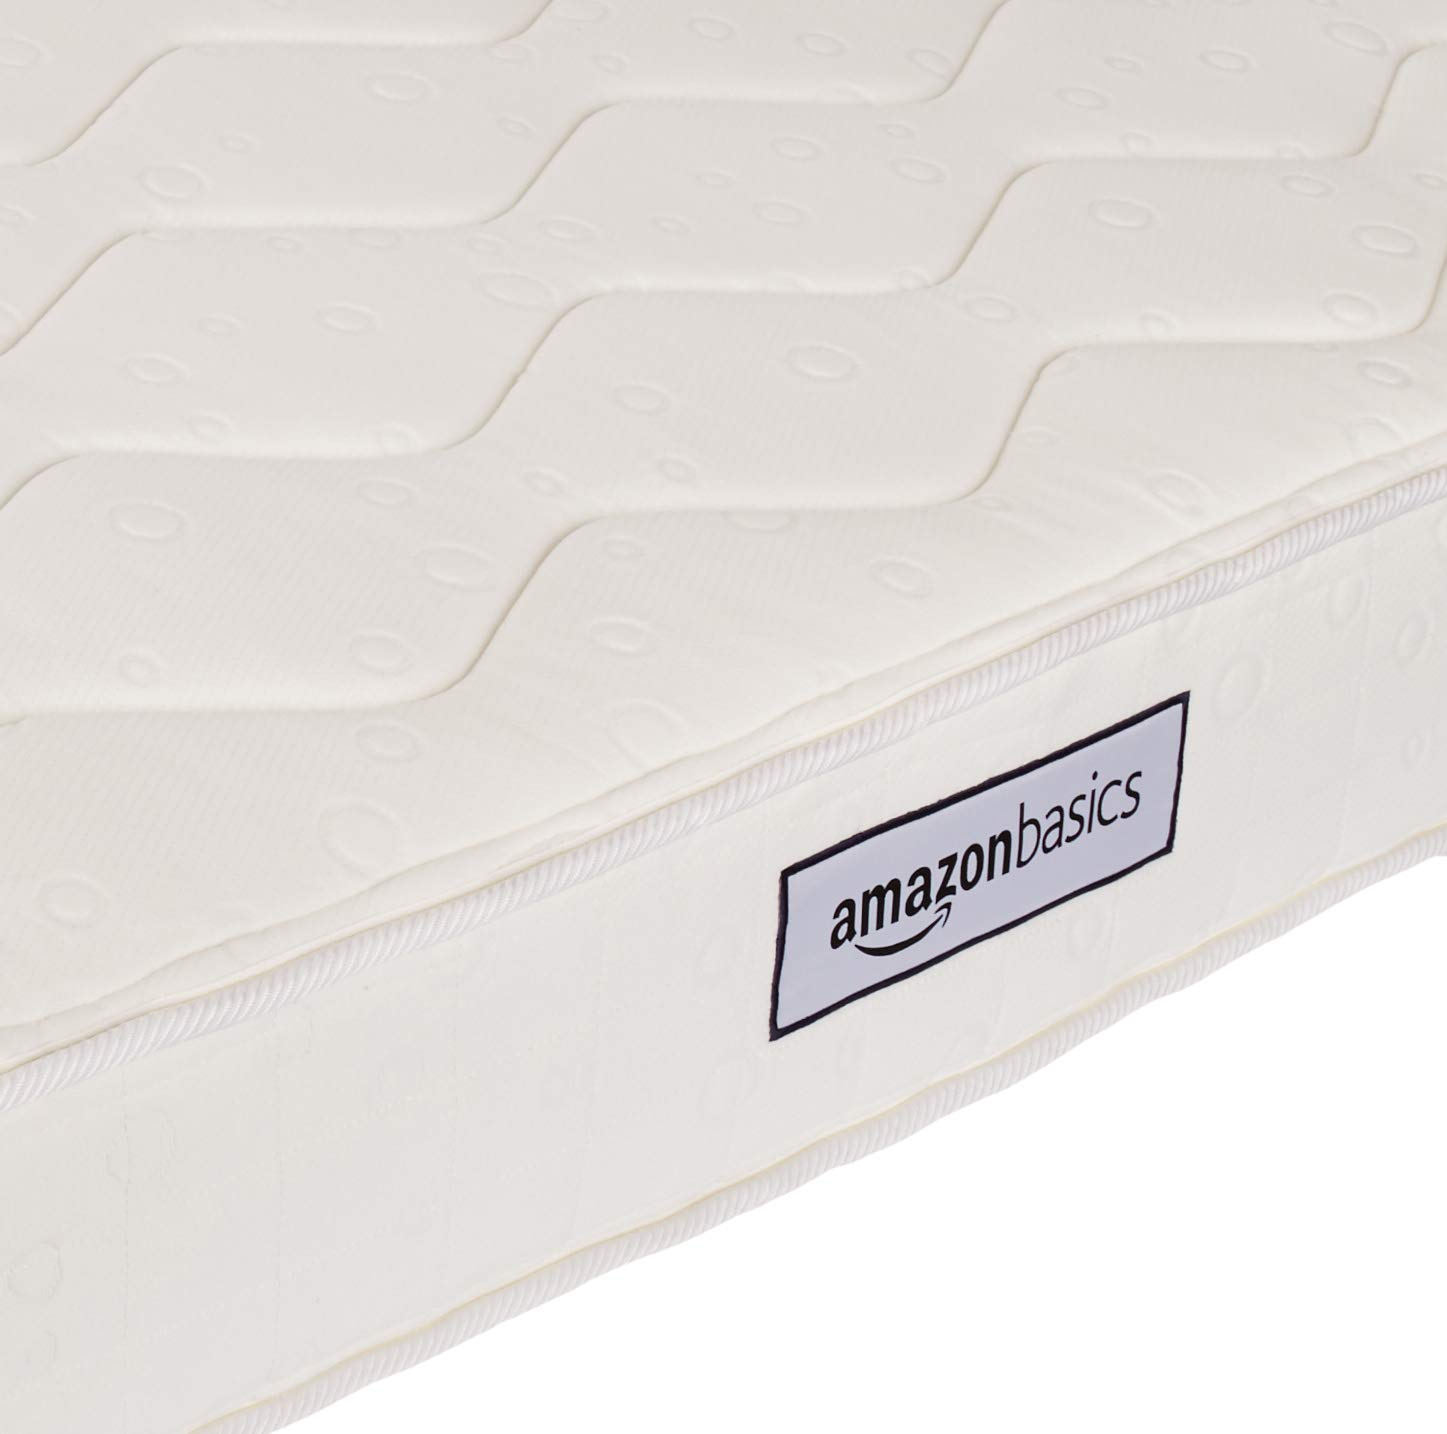 AmazonBasics Coil Mattress in a Box - Features Individual Pocket Spring for Motion Isolation, High-Density CertiPUR-US Certified Foam Layer - 8-Inch, Queen by AmazonBasics (Image #6)